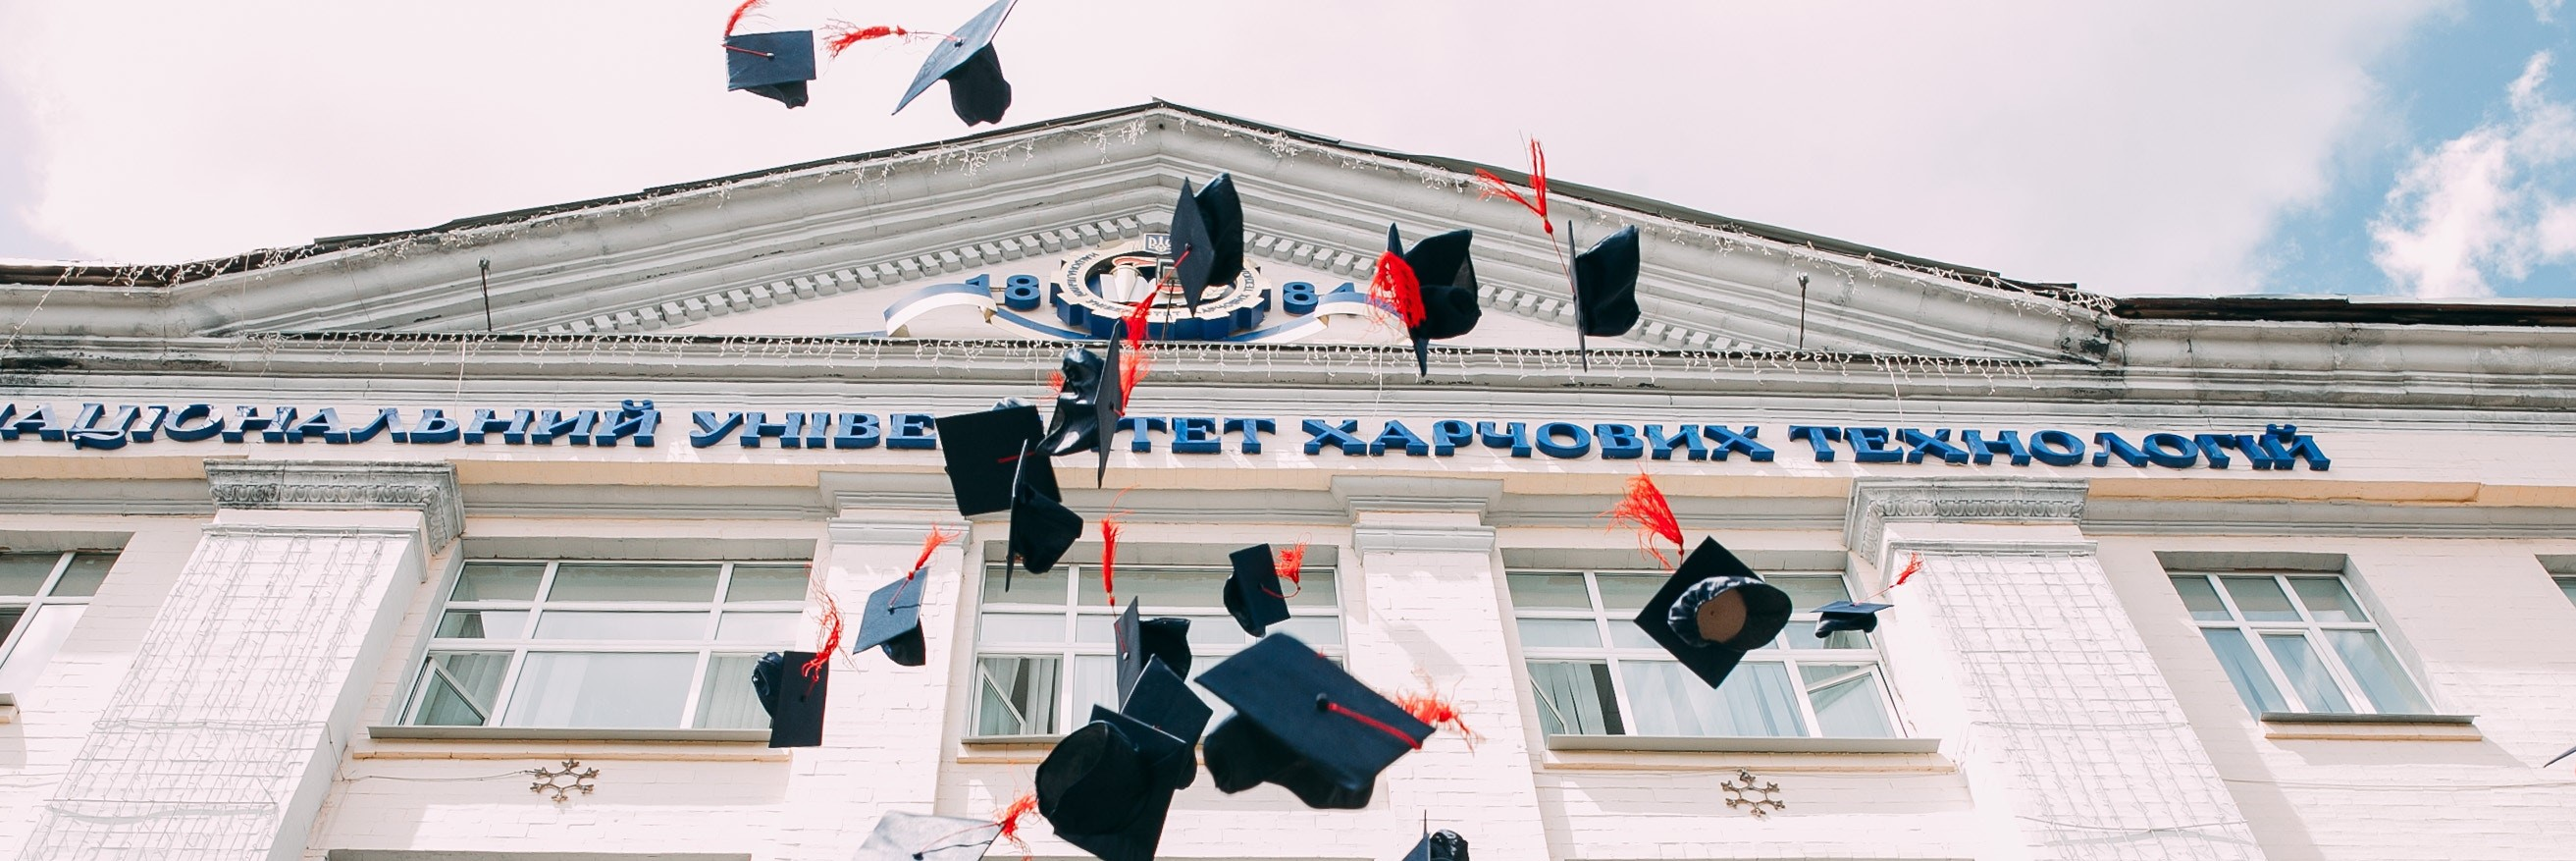 graduates throwing caps banner - vasily-koloda-620886-unsplash